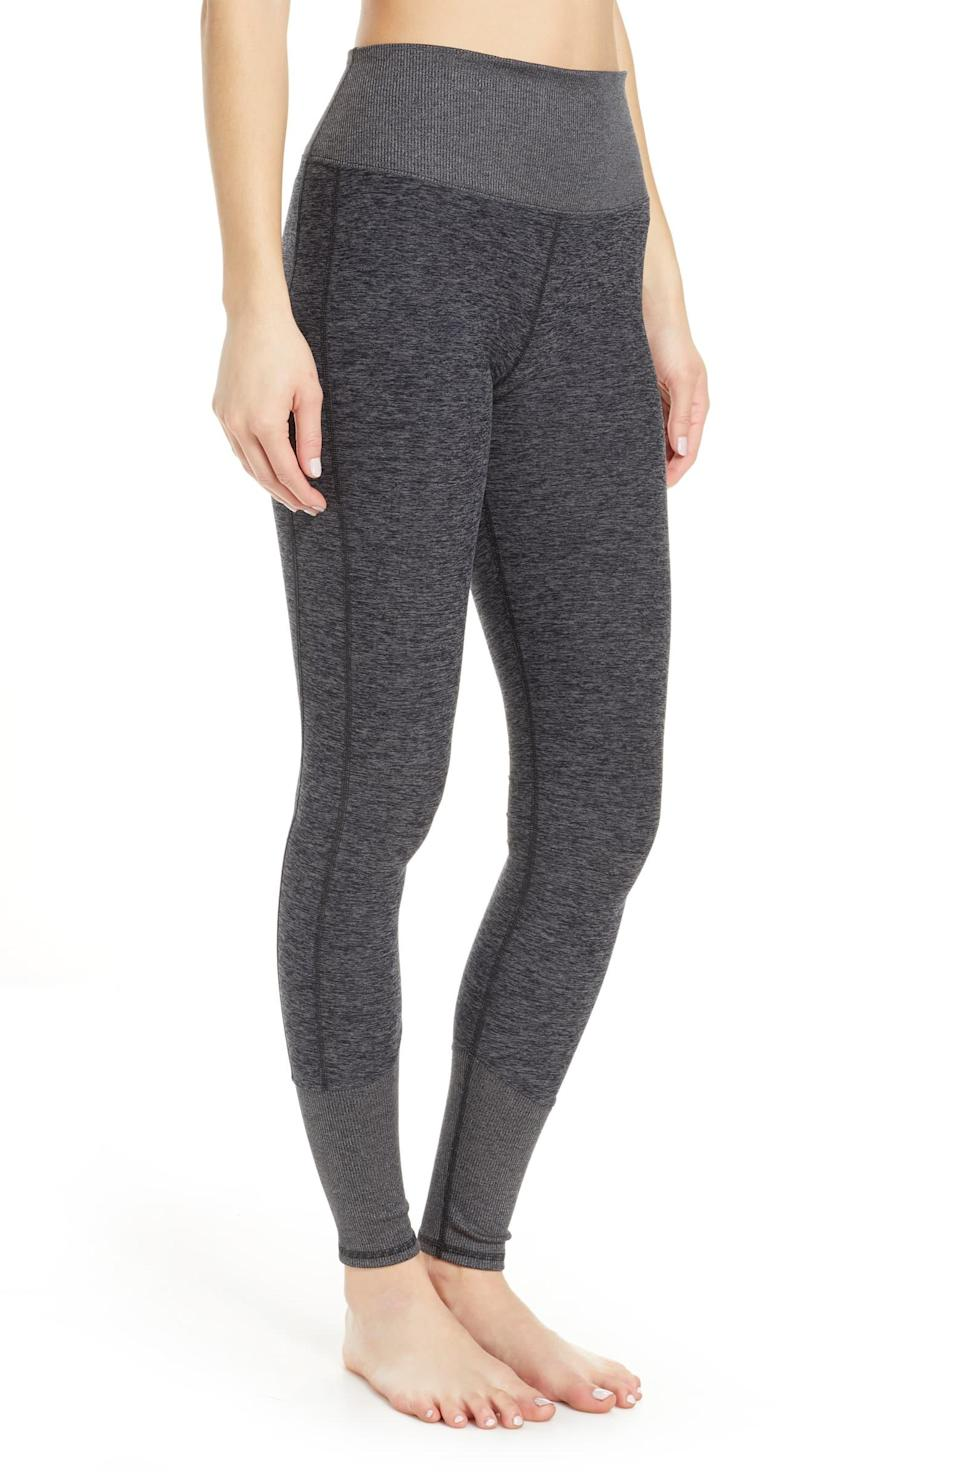 "<h3>Alo Yoga High Waist Lounge Leggings</h3> <br>Keep things comfy yet polished with a pair of streamlined leggings that new mamas can truly live in.<br><br><strong>Alo Yoga</strong> High Waist Lounge Leggings, $, available at <a href=""https://go.skimresources.com/?id=30283X879131&url=https%3A%2F%2Fshop.nordstrom.com%2Fs%2Falo-high-waist-lounge-leggings%2F5112639%2Ffull"" rel=""nofollow noopener"" target=""_blank"" data-ylk=""slk:Nordstrom"" class=""link rapid-noclick-resp"">Nordstrom</a><br>"